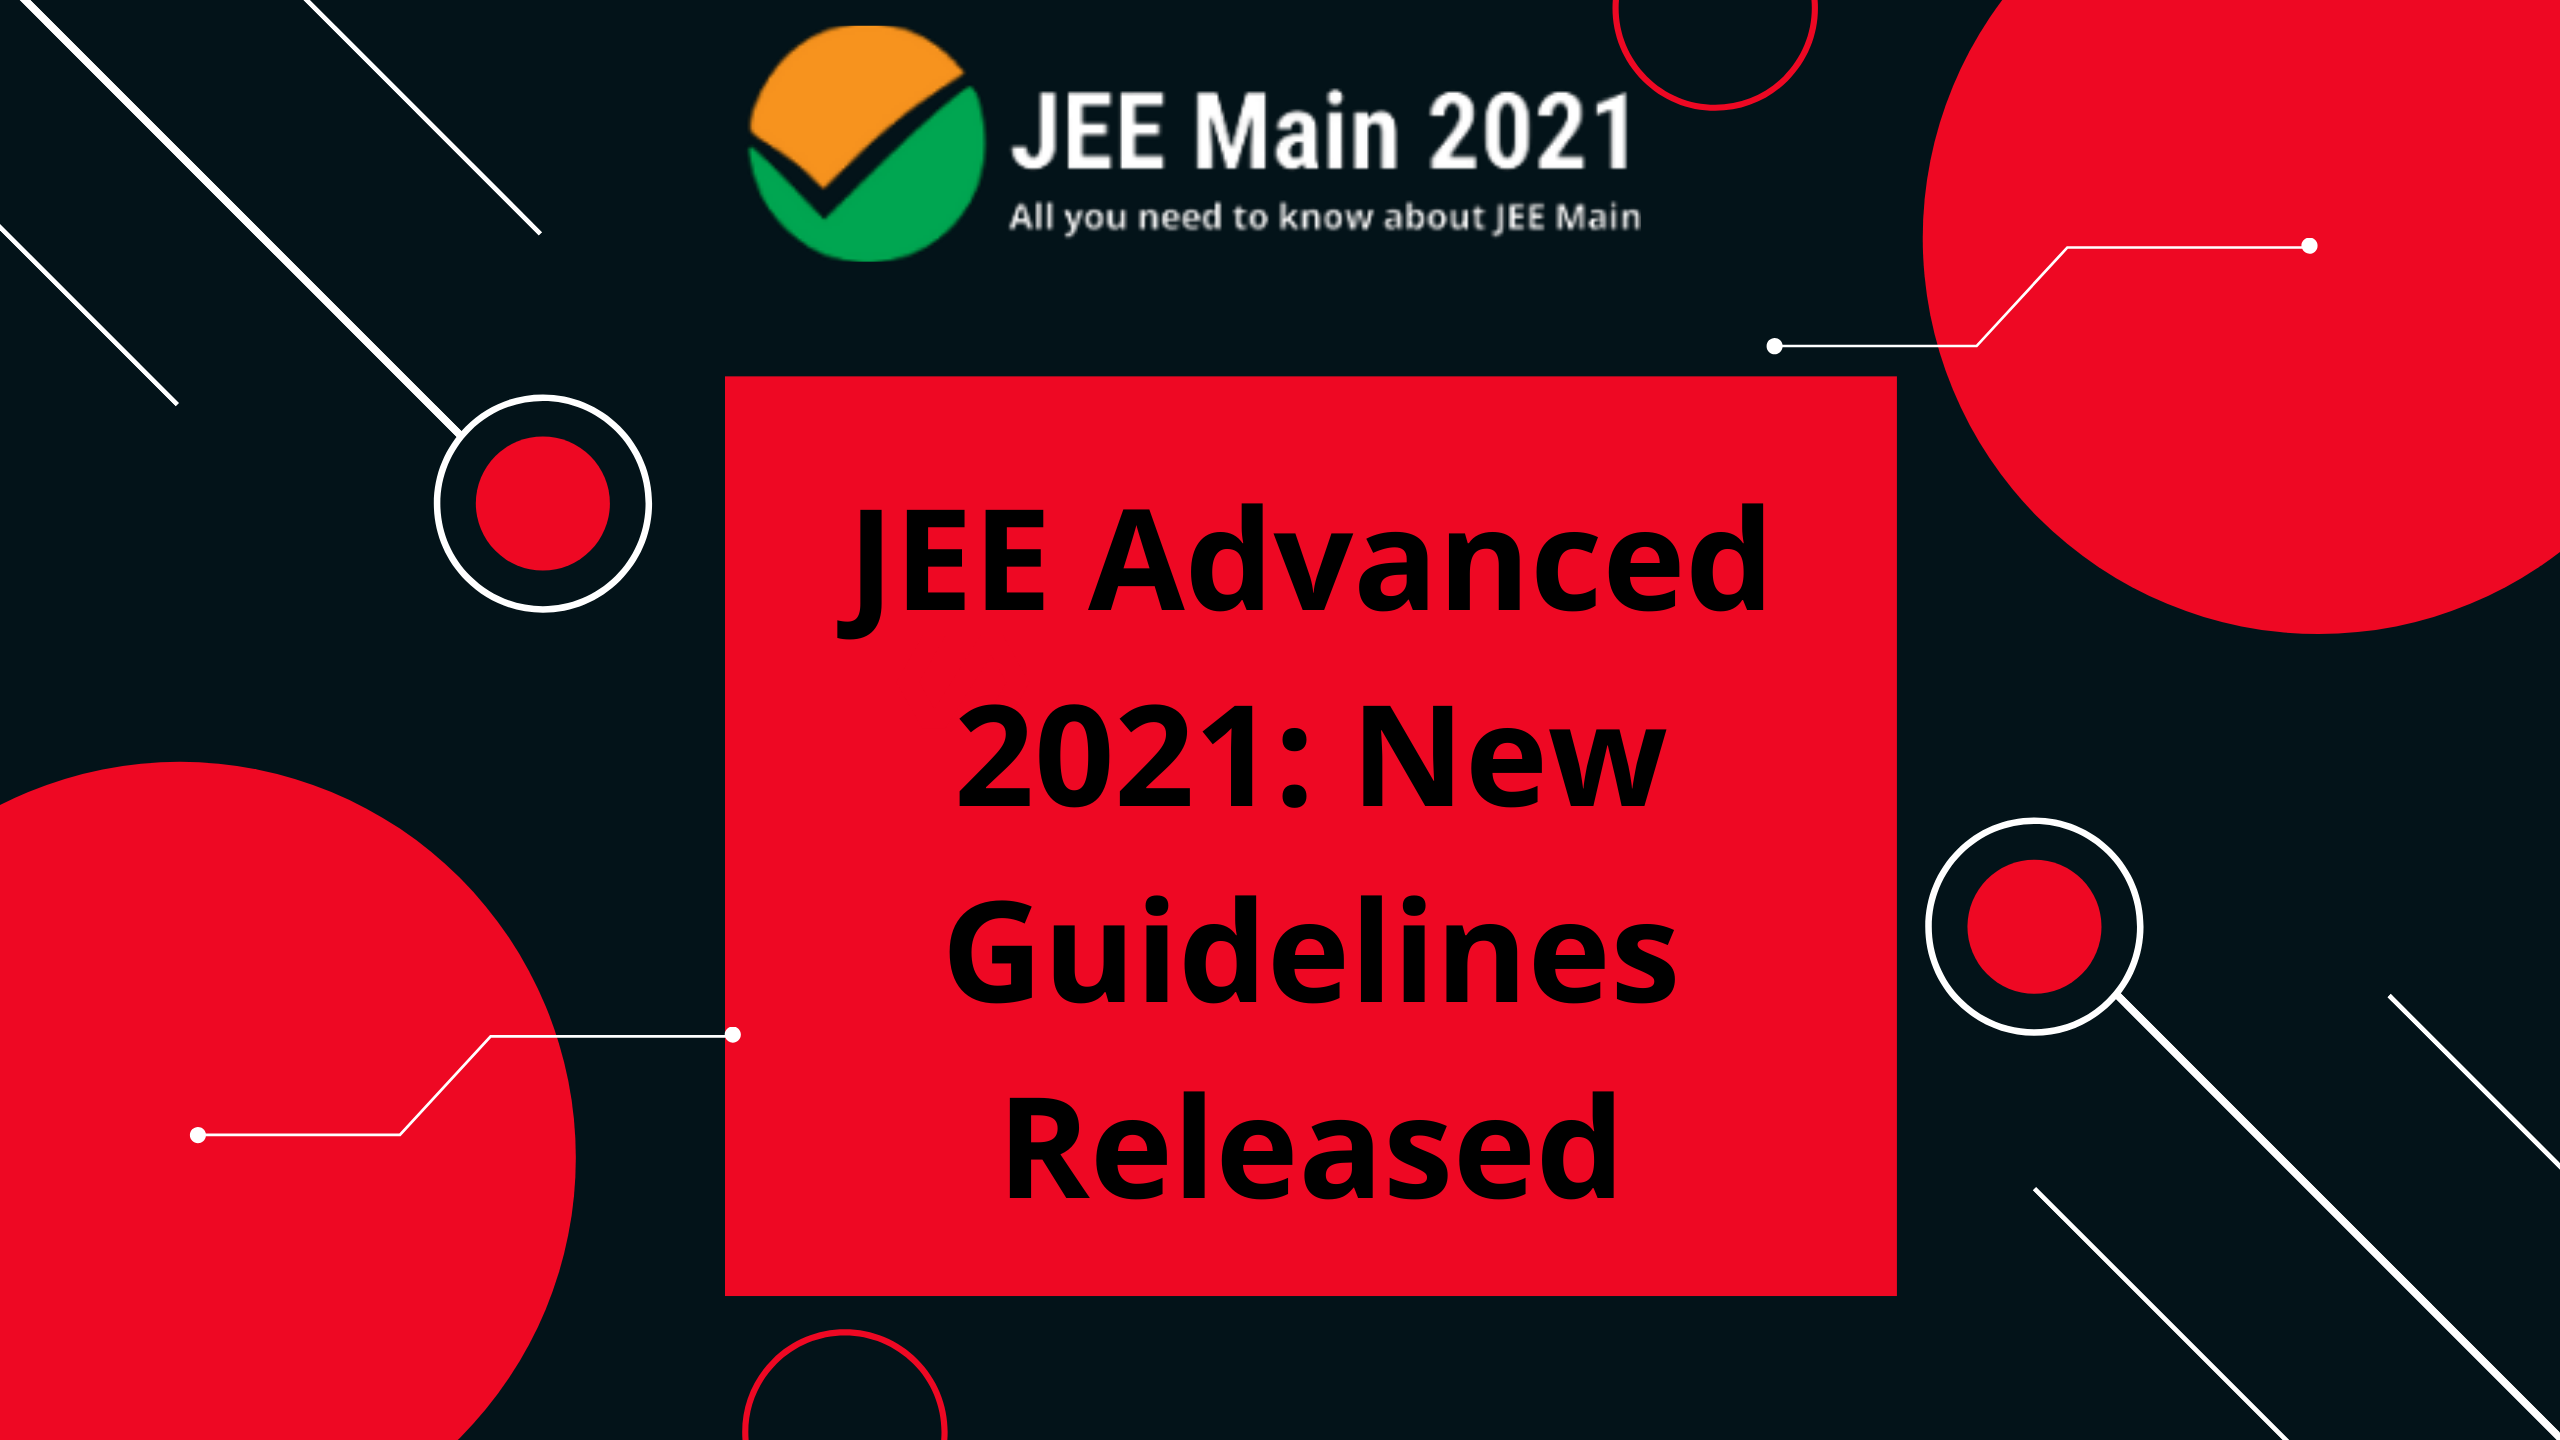 JEE Advanced 2021: New Guidelines Released